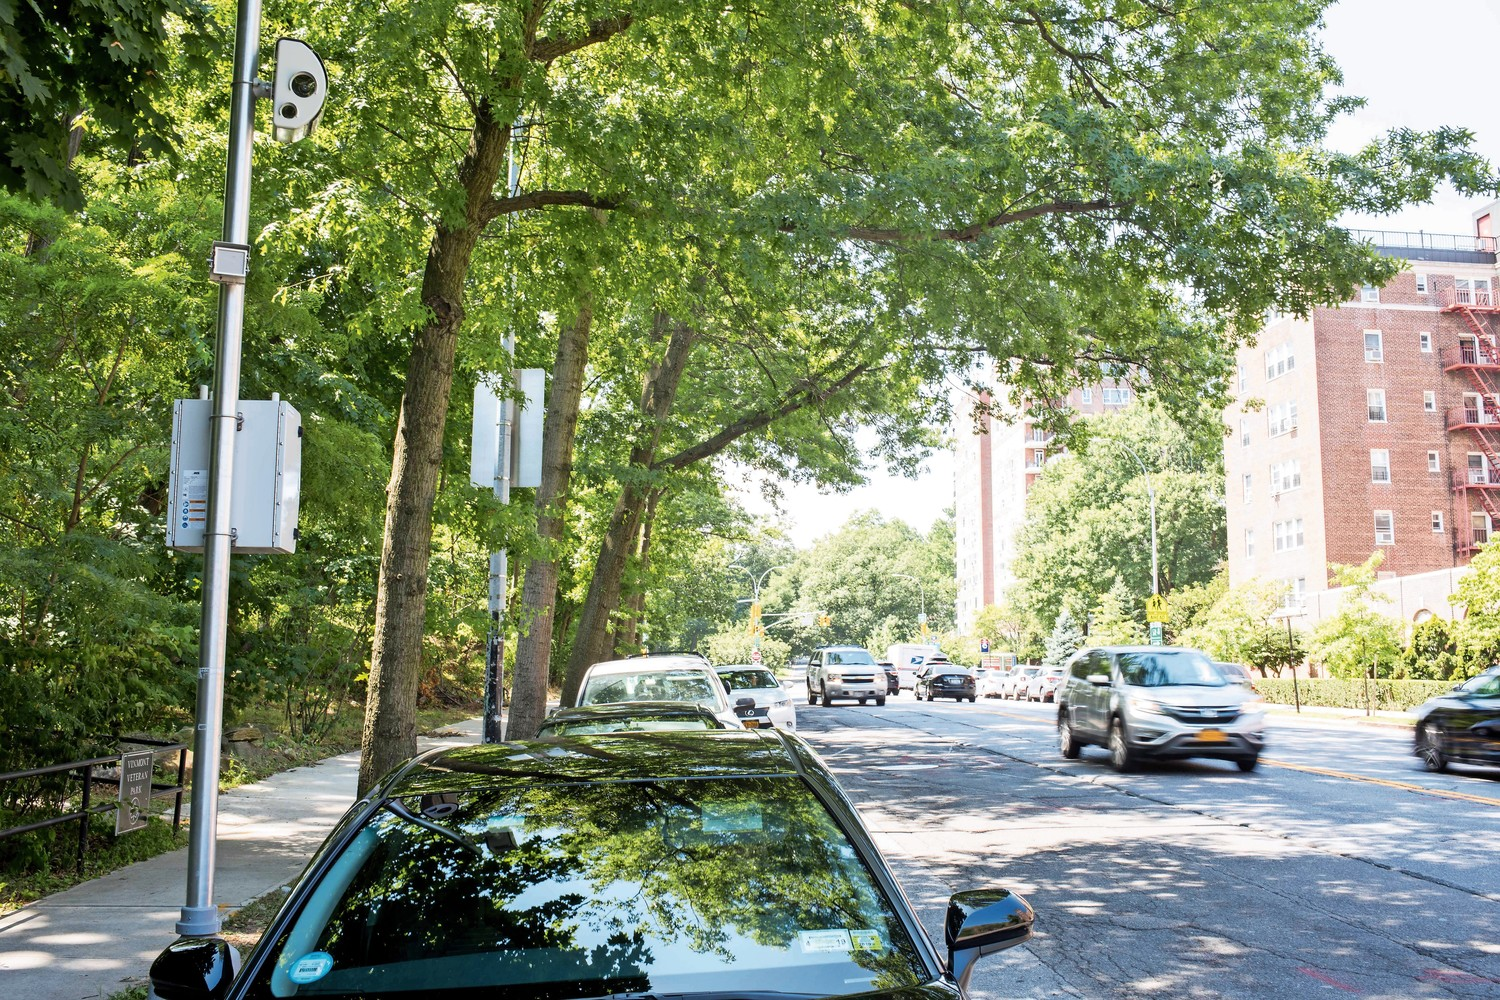 Cars drive past a speed camera on Riverdale Avenue between West 256th and West 259th streets near P.S. 81. The speed camera program is set to expire on July 21, which residents and local lawmakers feel is a mistake.